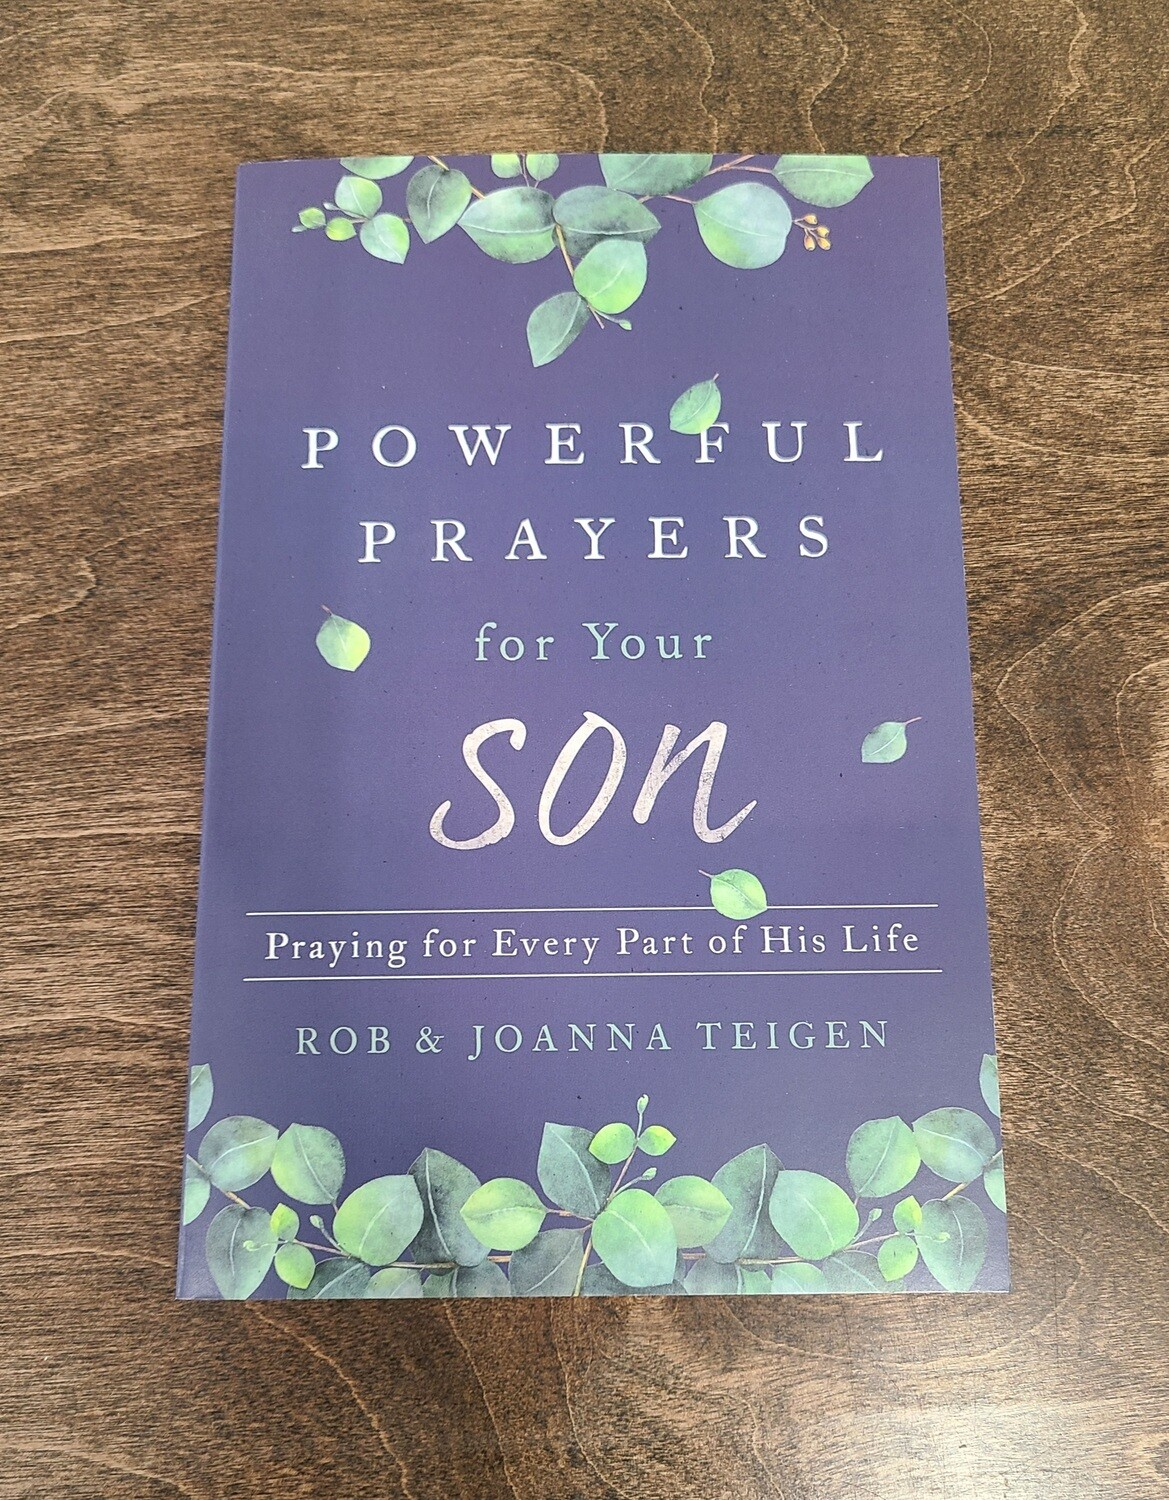 Powerful Prayers for Your Son by Rob and Joanna Teigen